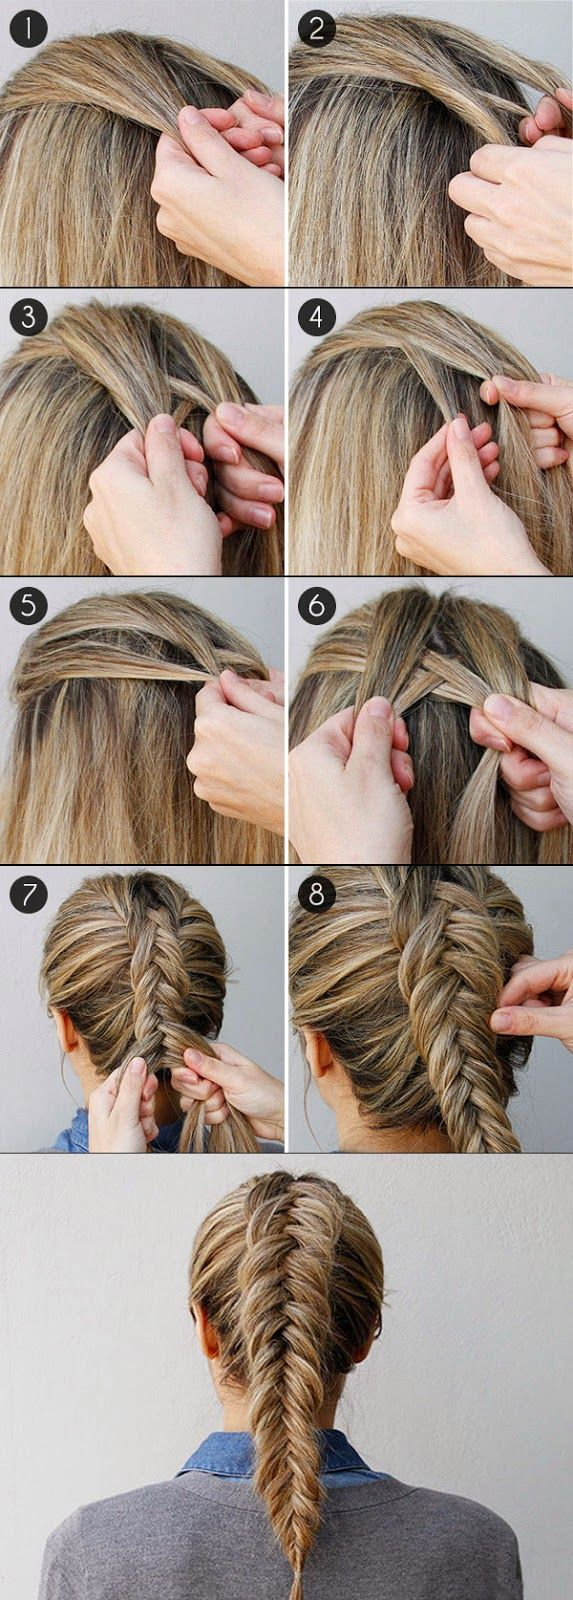 Remarkable 1000 Ideas About Braiding Your Own Hair On Pinterest How To Short Hairstyles For Black Women Fulllsitofus